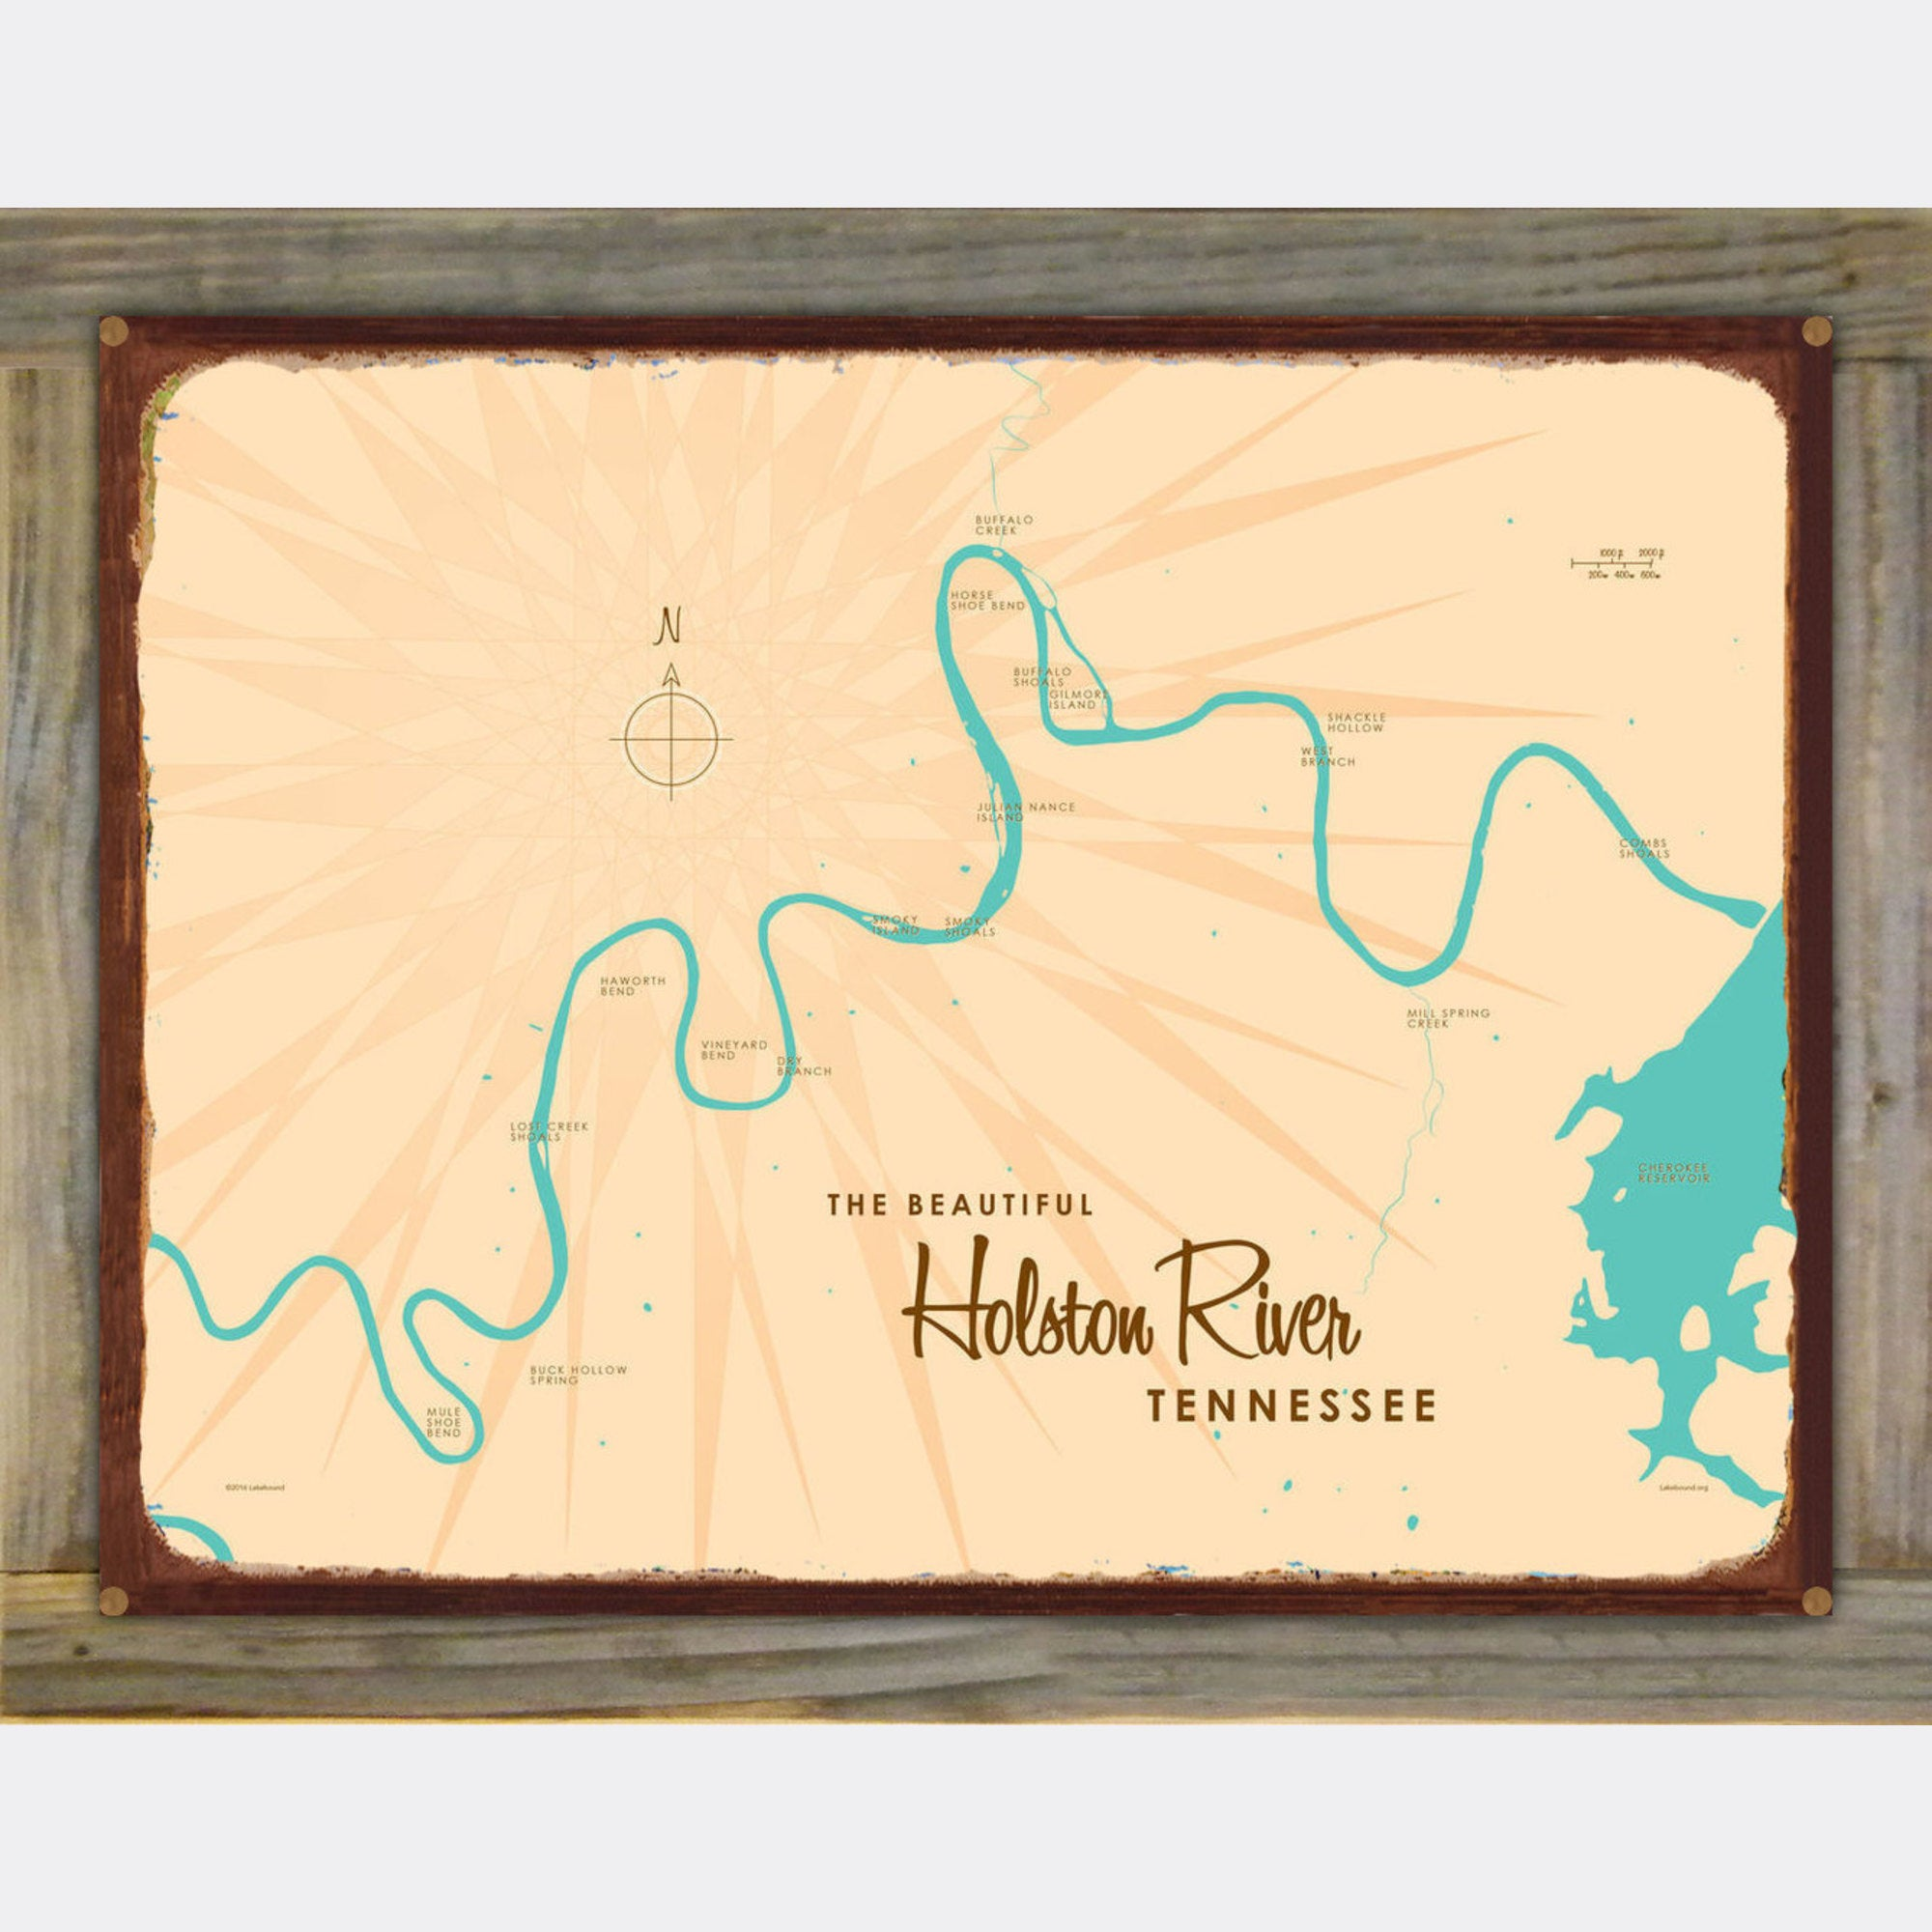 Holston River Tennessee, Wood-Mounted Rustic Metal Sign Map Art